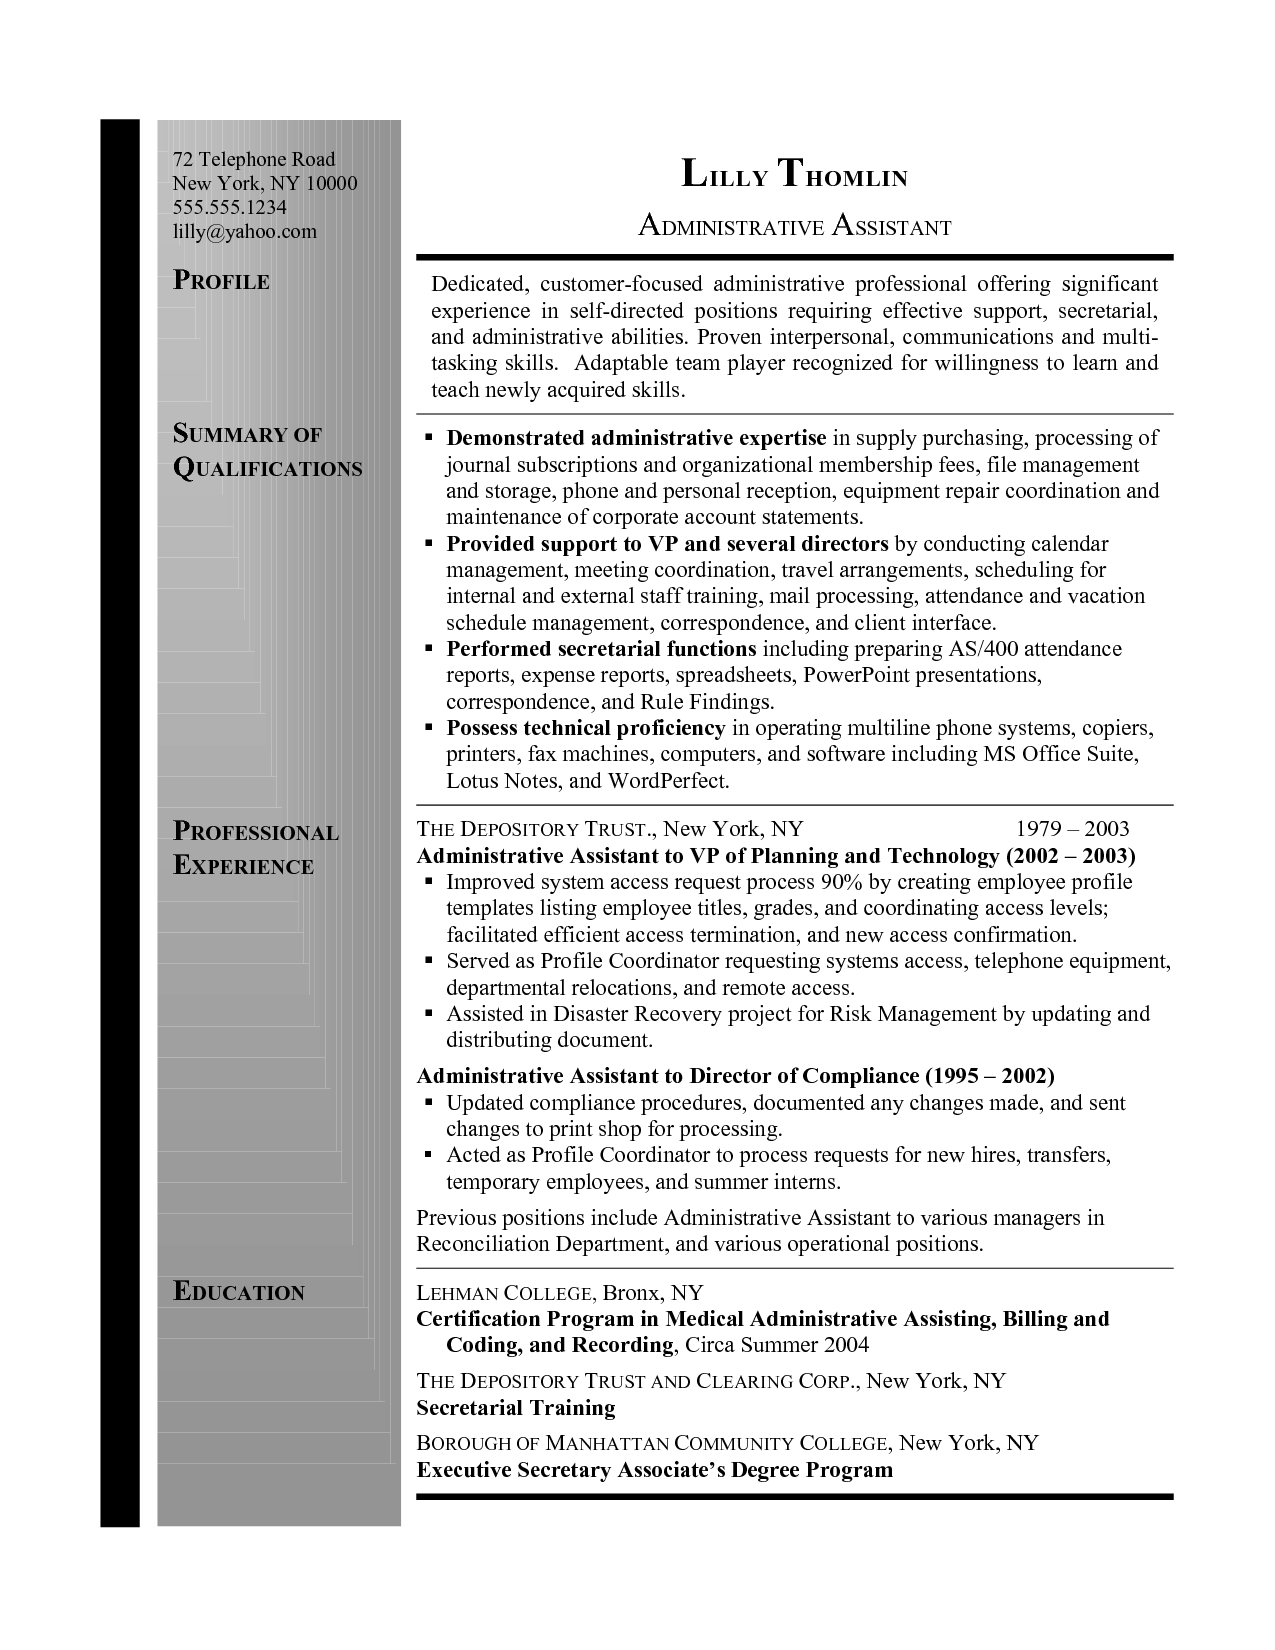 Resume summary administrative assistant administrative for Business administration resume skills